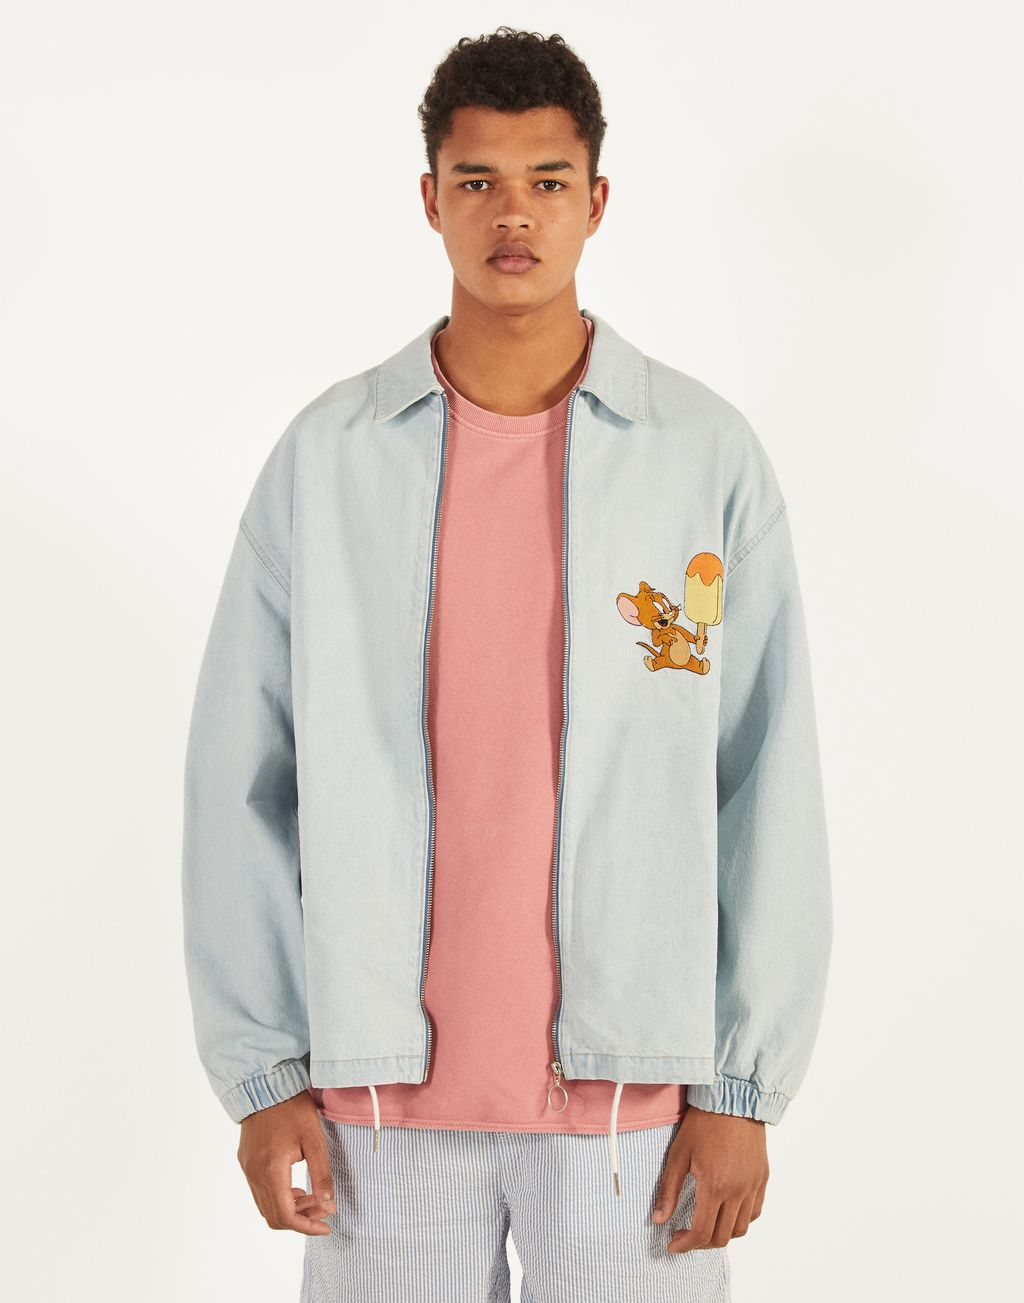 Tom & Jerry denim jacket